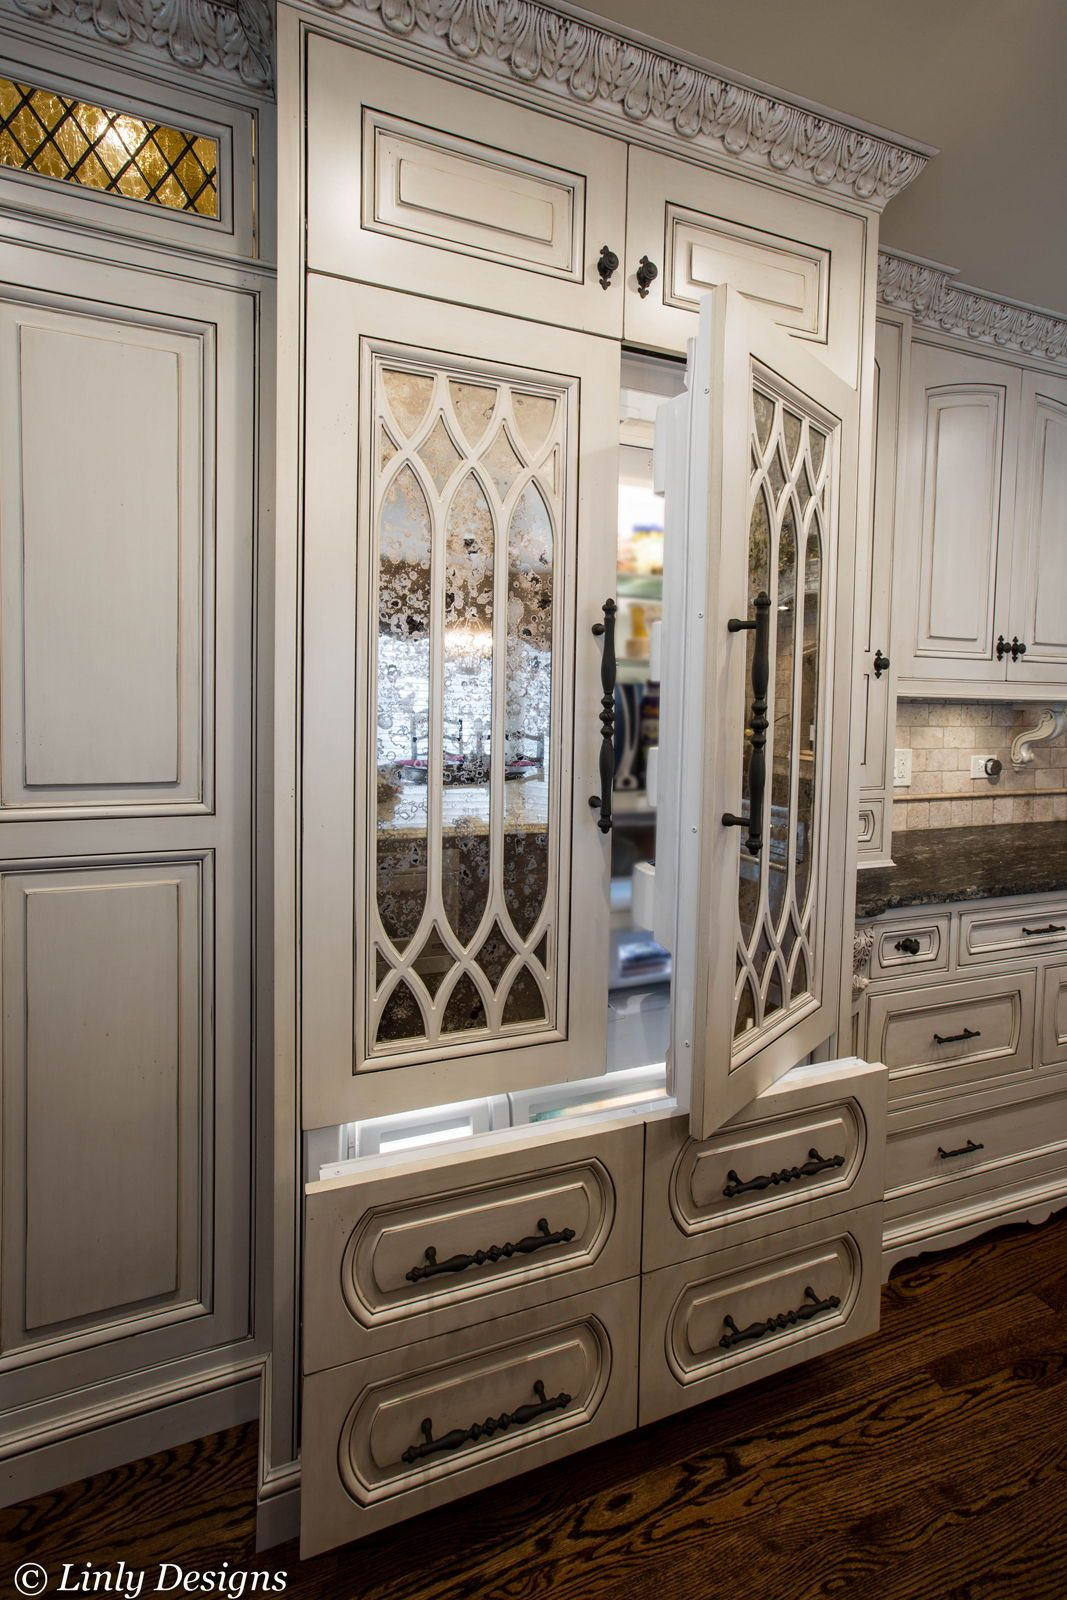 Kitchen And Bathroom Remodeling In Chicago Linly Designs In 2020 Kitchen Bathroom Remodel Complete Kitchen Remodel Modern Appliances